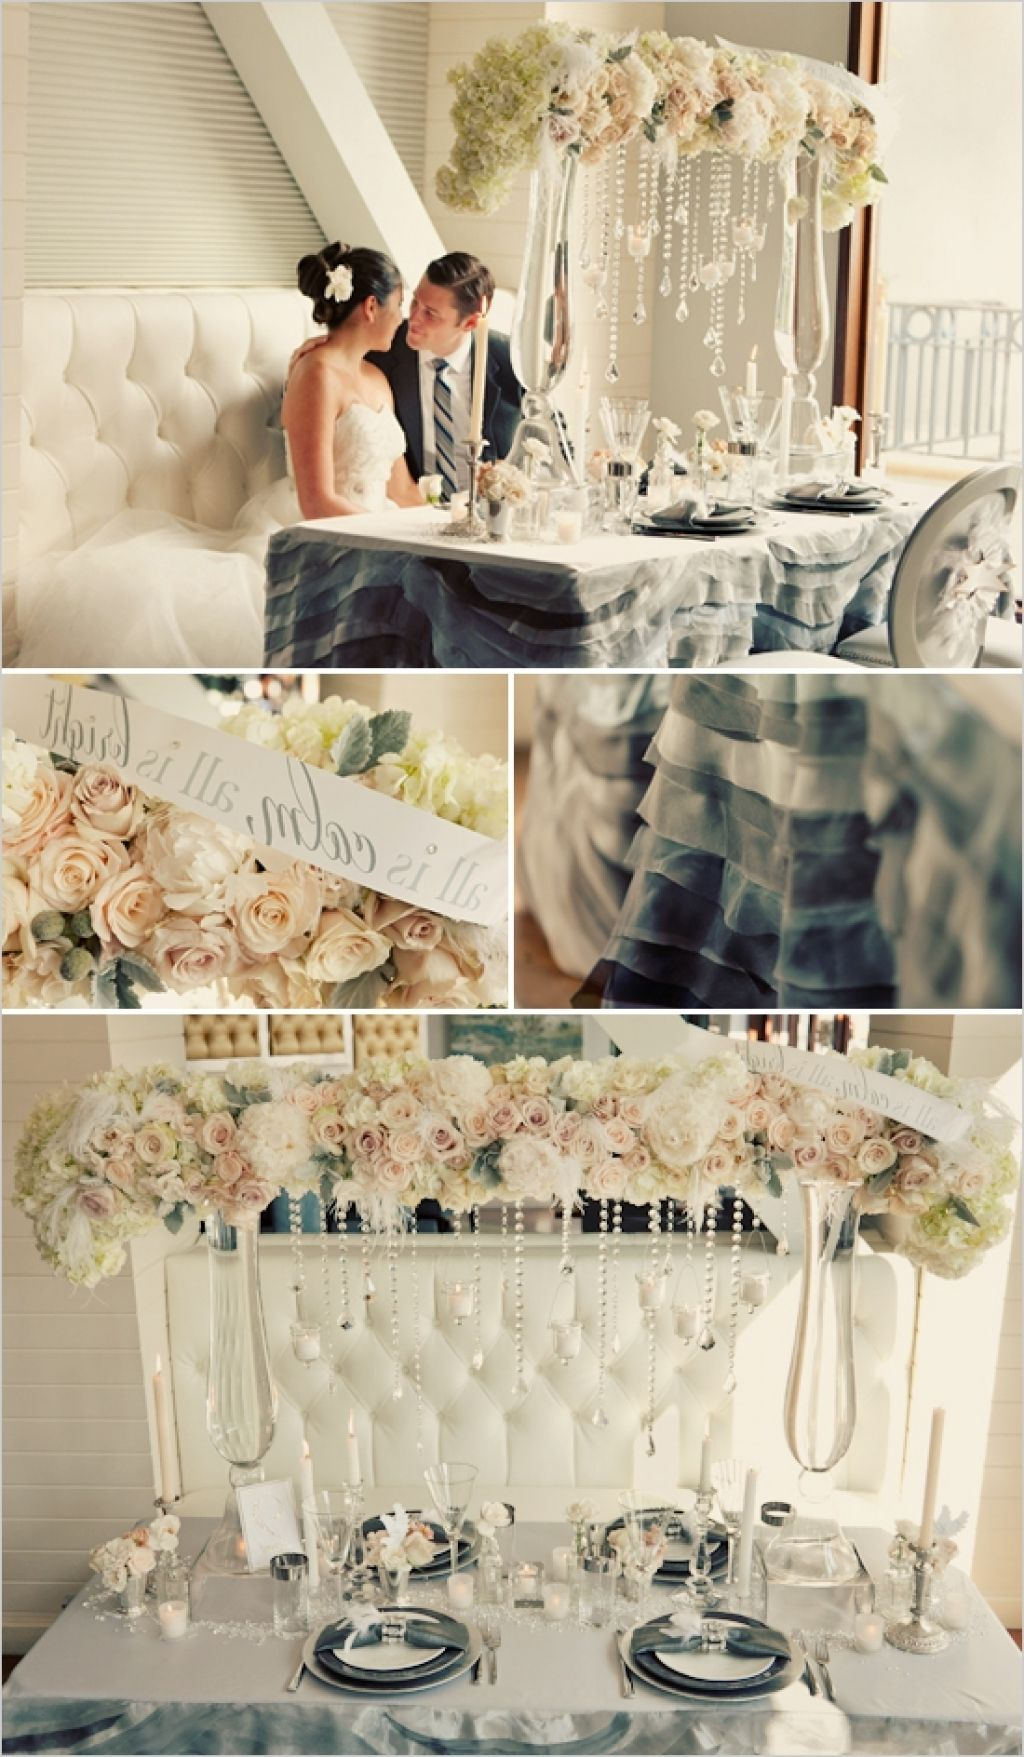 Tips For Wedding Decorations Cheap On A Low Budget 99 Wedding Ideas